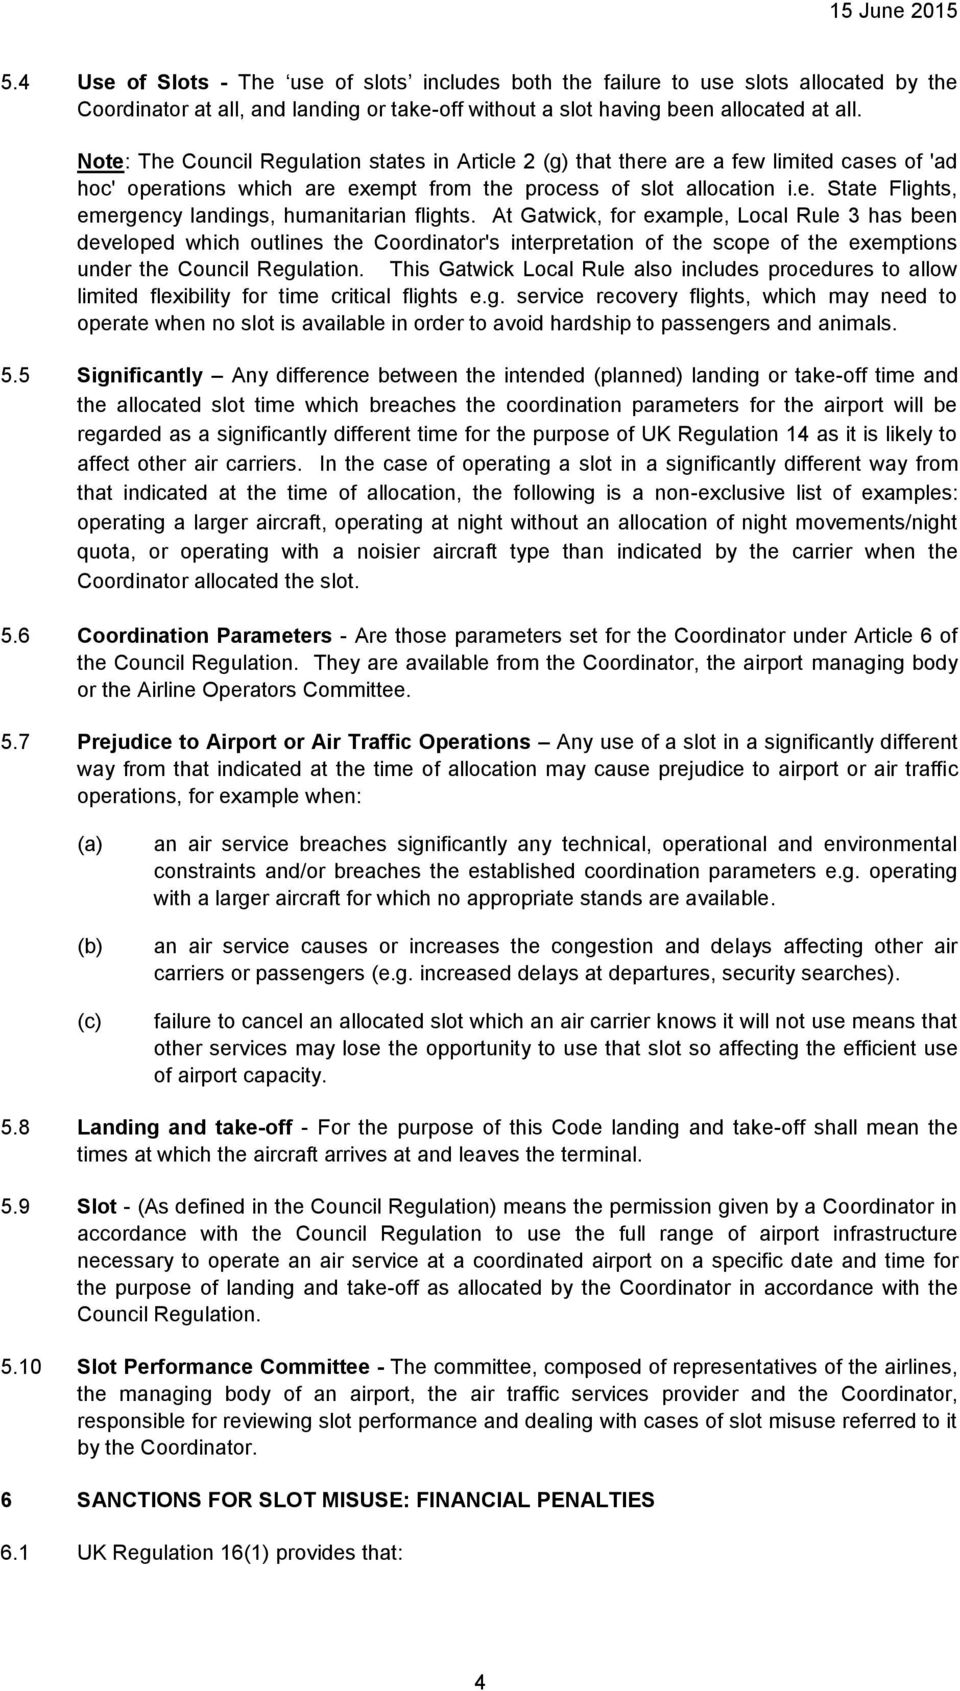 At Gatwick, for example, Local Rule 3 has been developed which outlines the Coordinator's interpretation of the scope of the exemptions under the Council Regulation.